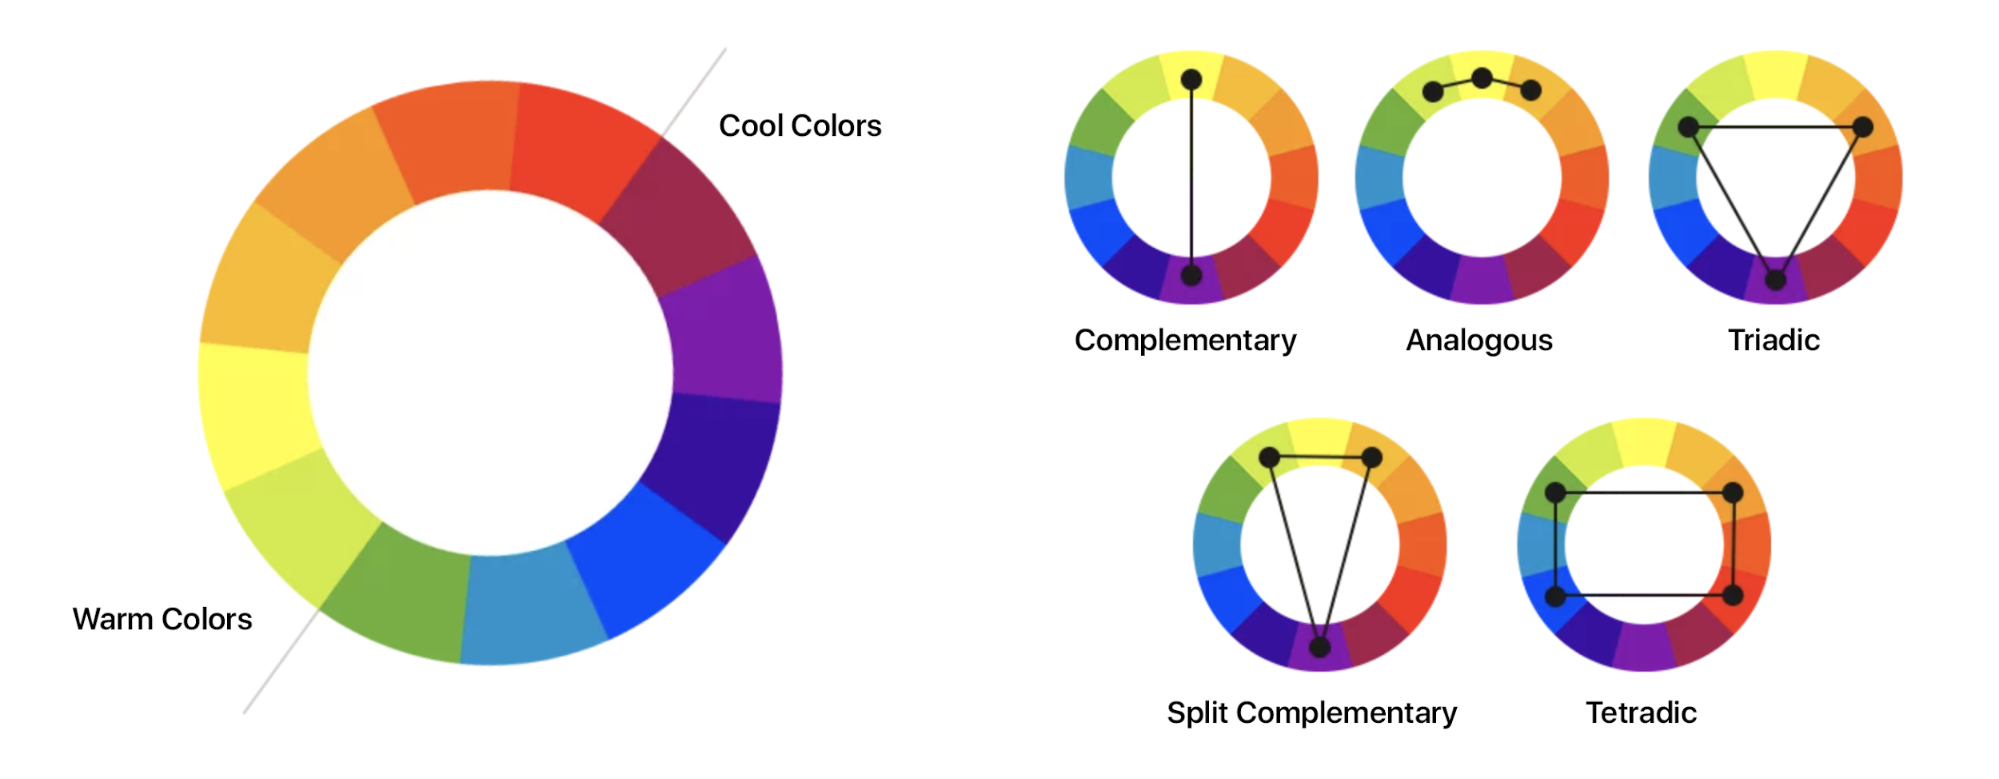 Strategies for combining colors properly